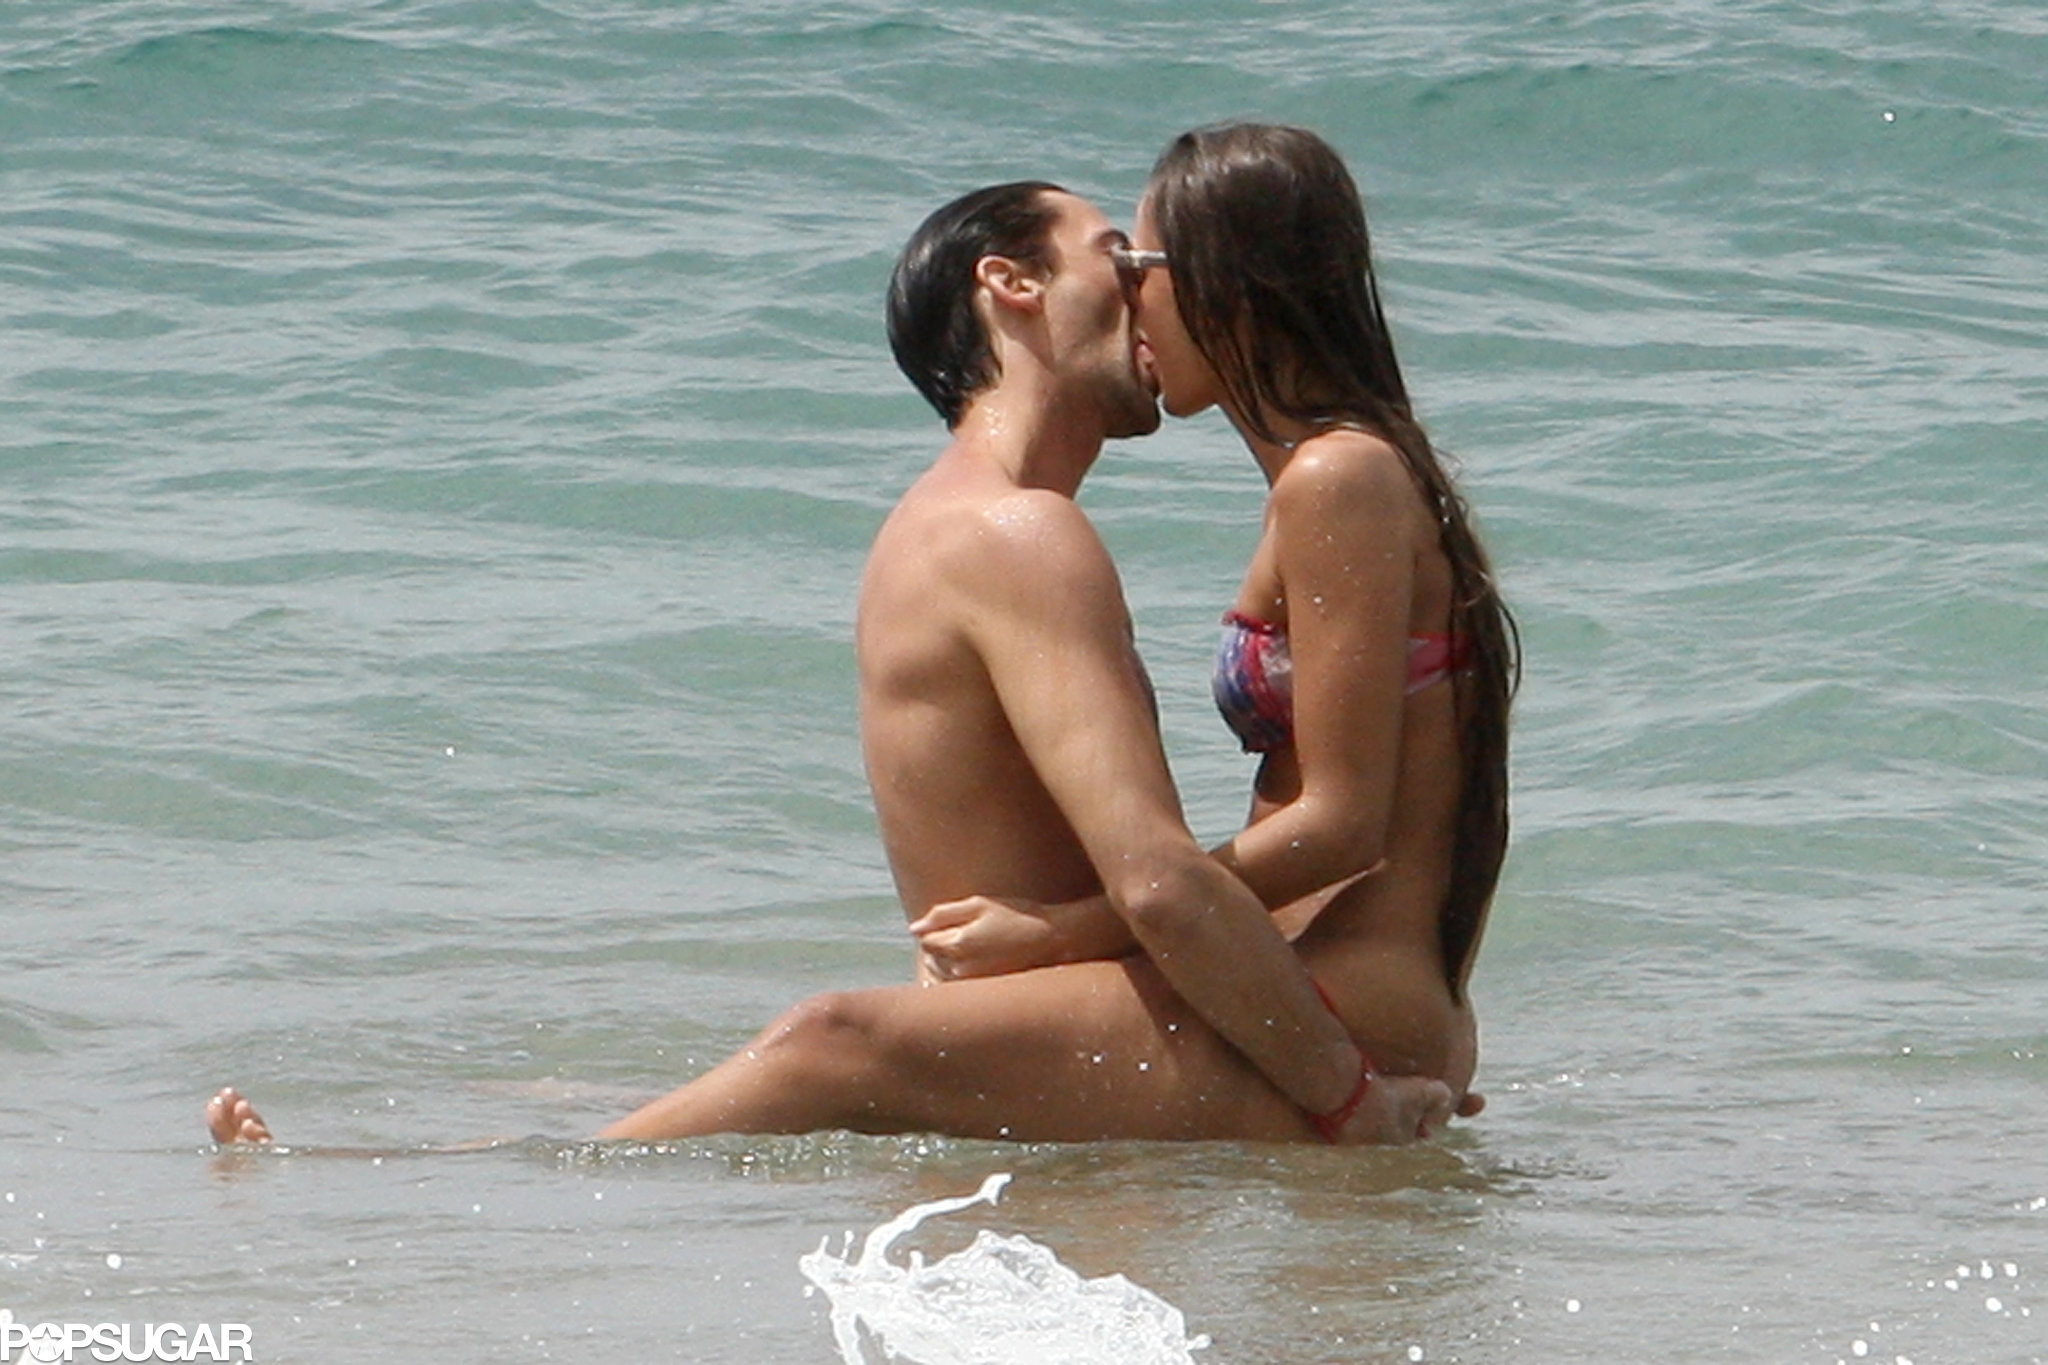 Things got hot and heavy for Adrien Brody and his girlfriend during a March 2